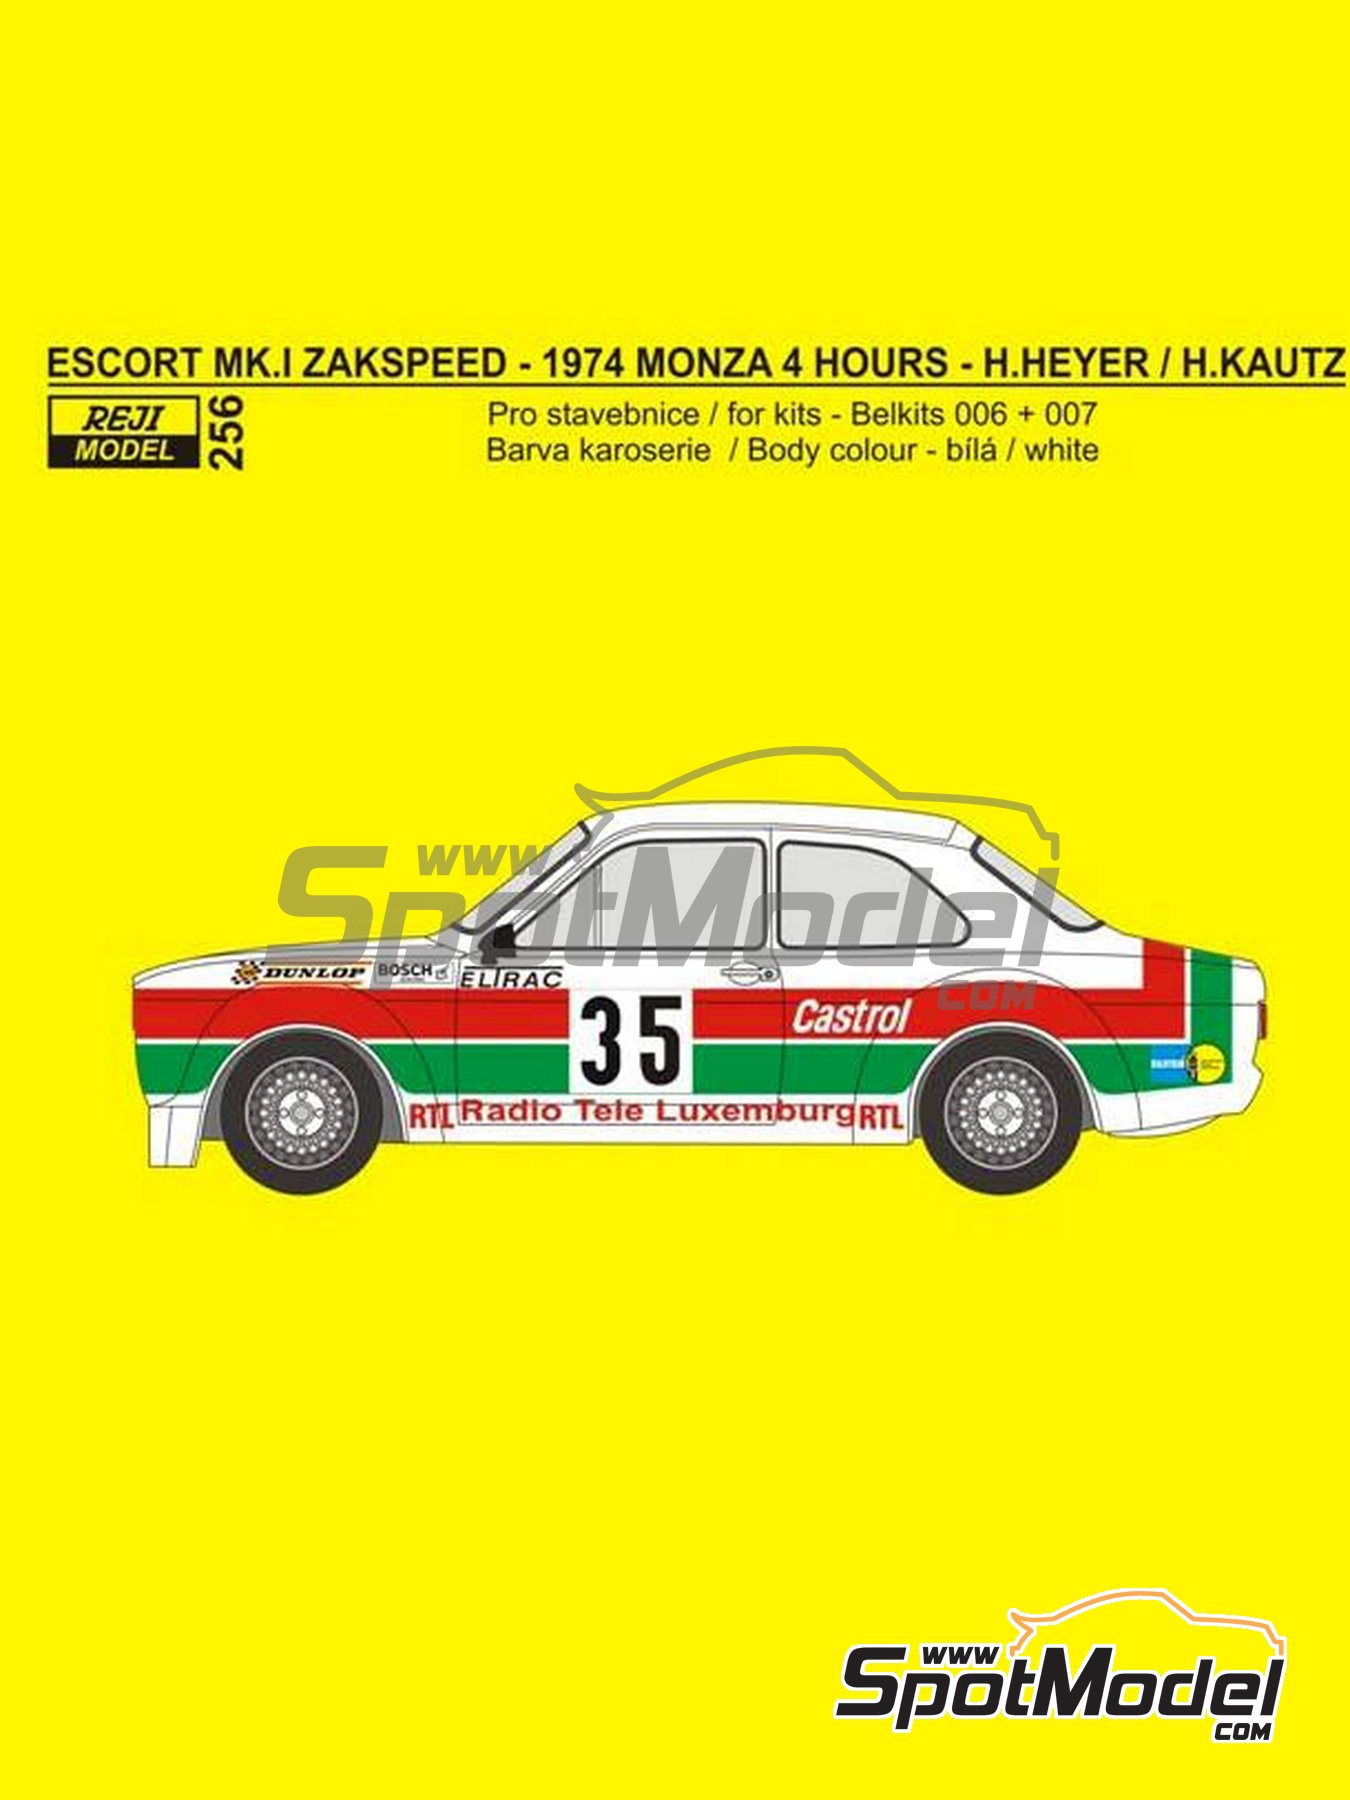 Ford Escort Mk. I Zakspeed - 4 Hours Monza 1974 | Marking in 1/24 scale manufactured by Reji Model (ref. REJI-256) image